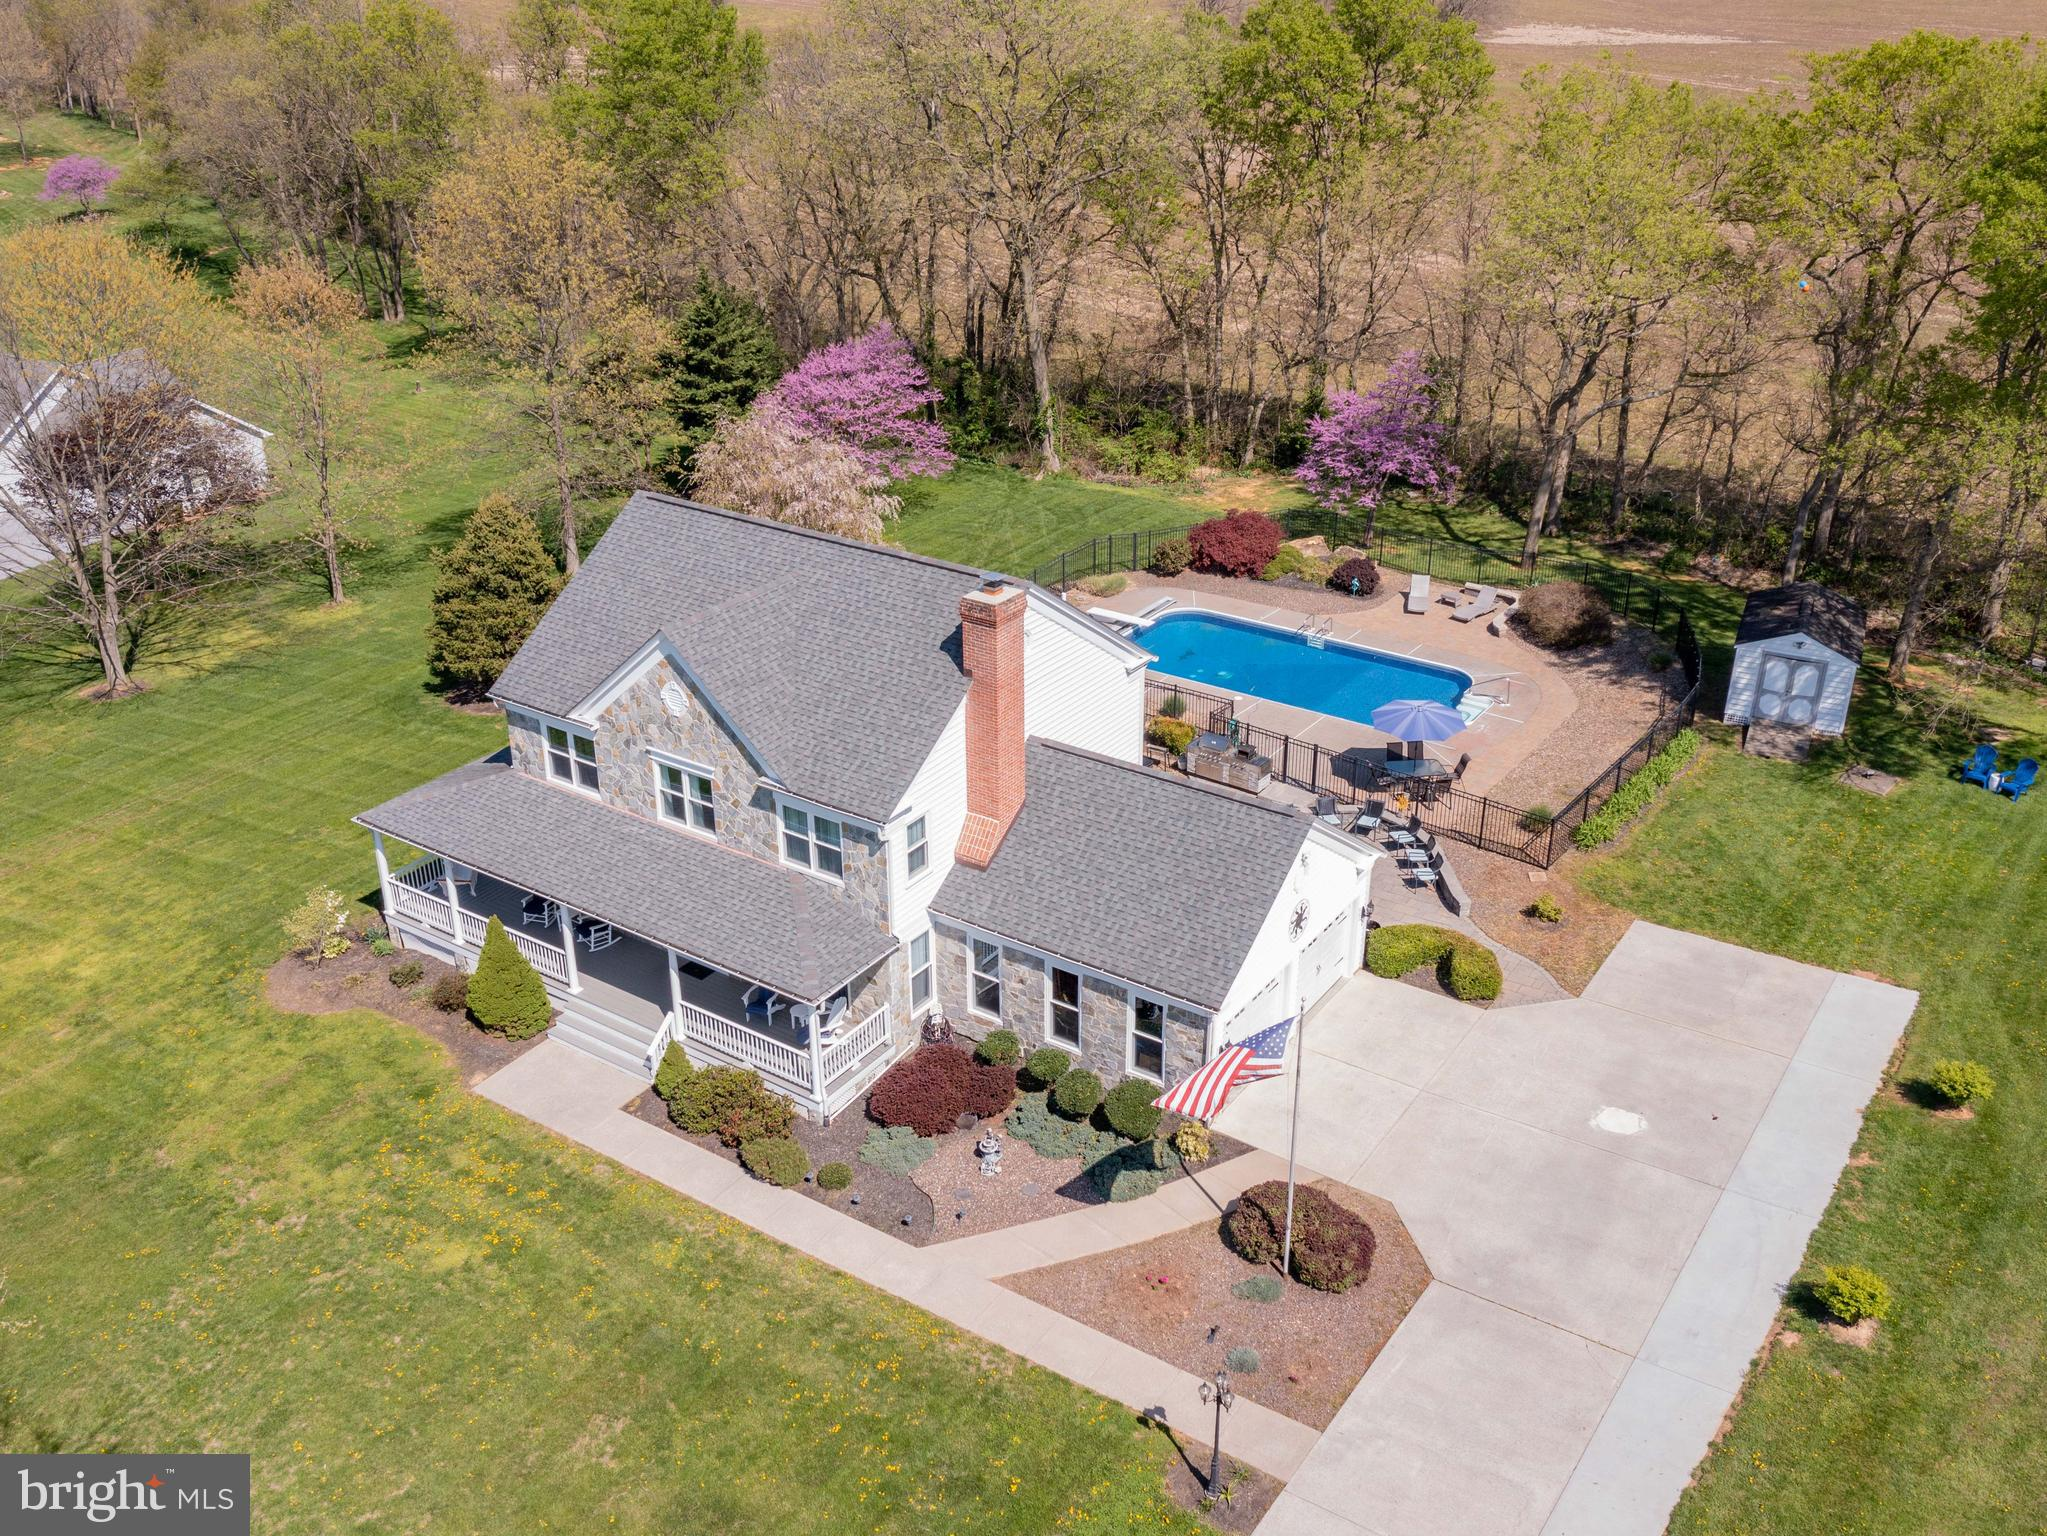 Gorgeous, well-kept home with a saltwater pool, screened in porch, and amazing mountain views! Get e